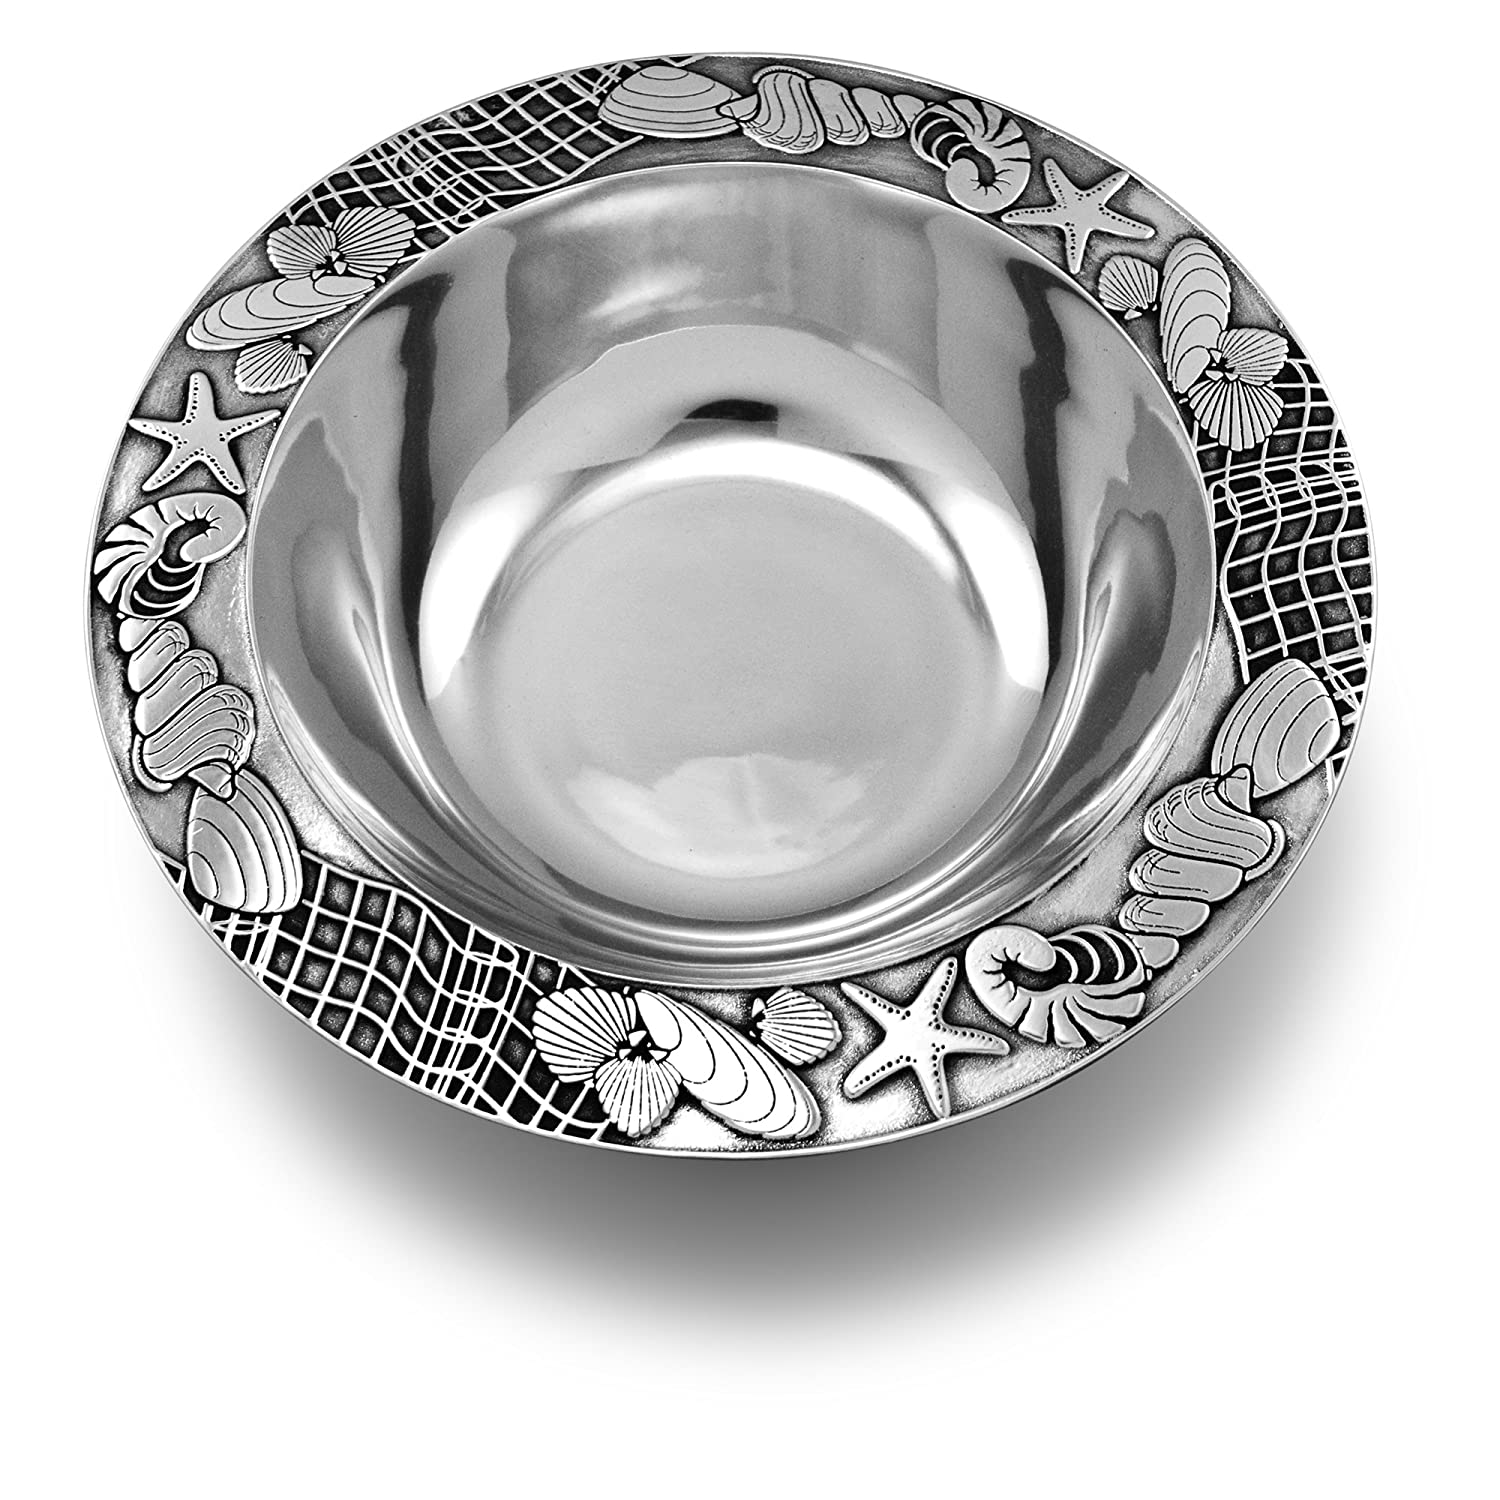 Coastal Christmas Tablescape Décor - Seashore medium round silver aluminum alloy serving bowl by Designer Wilton Armetale